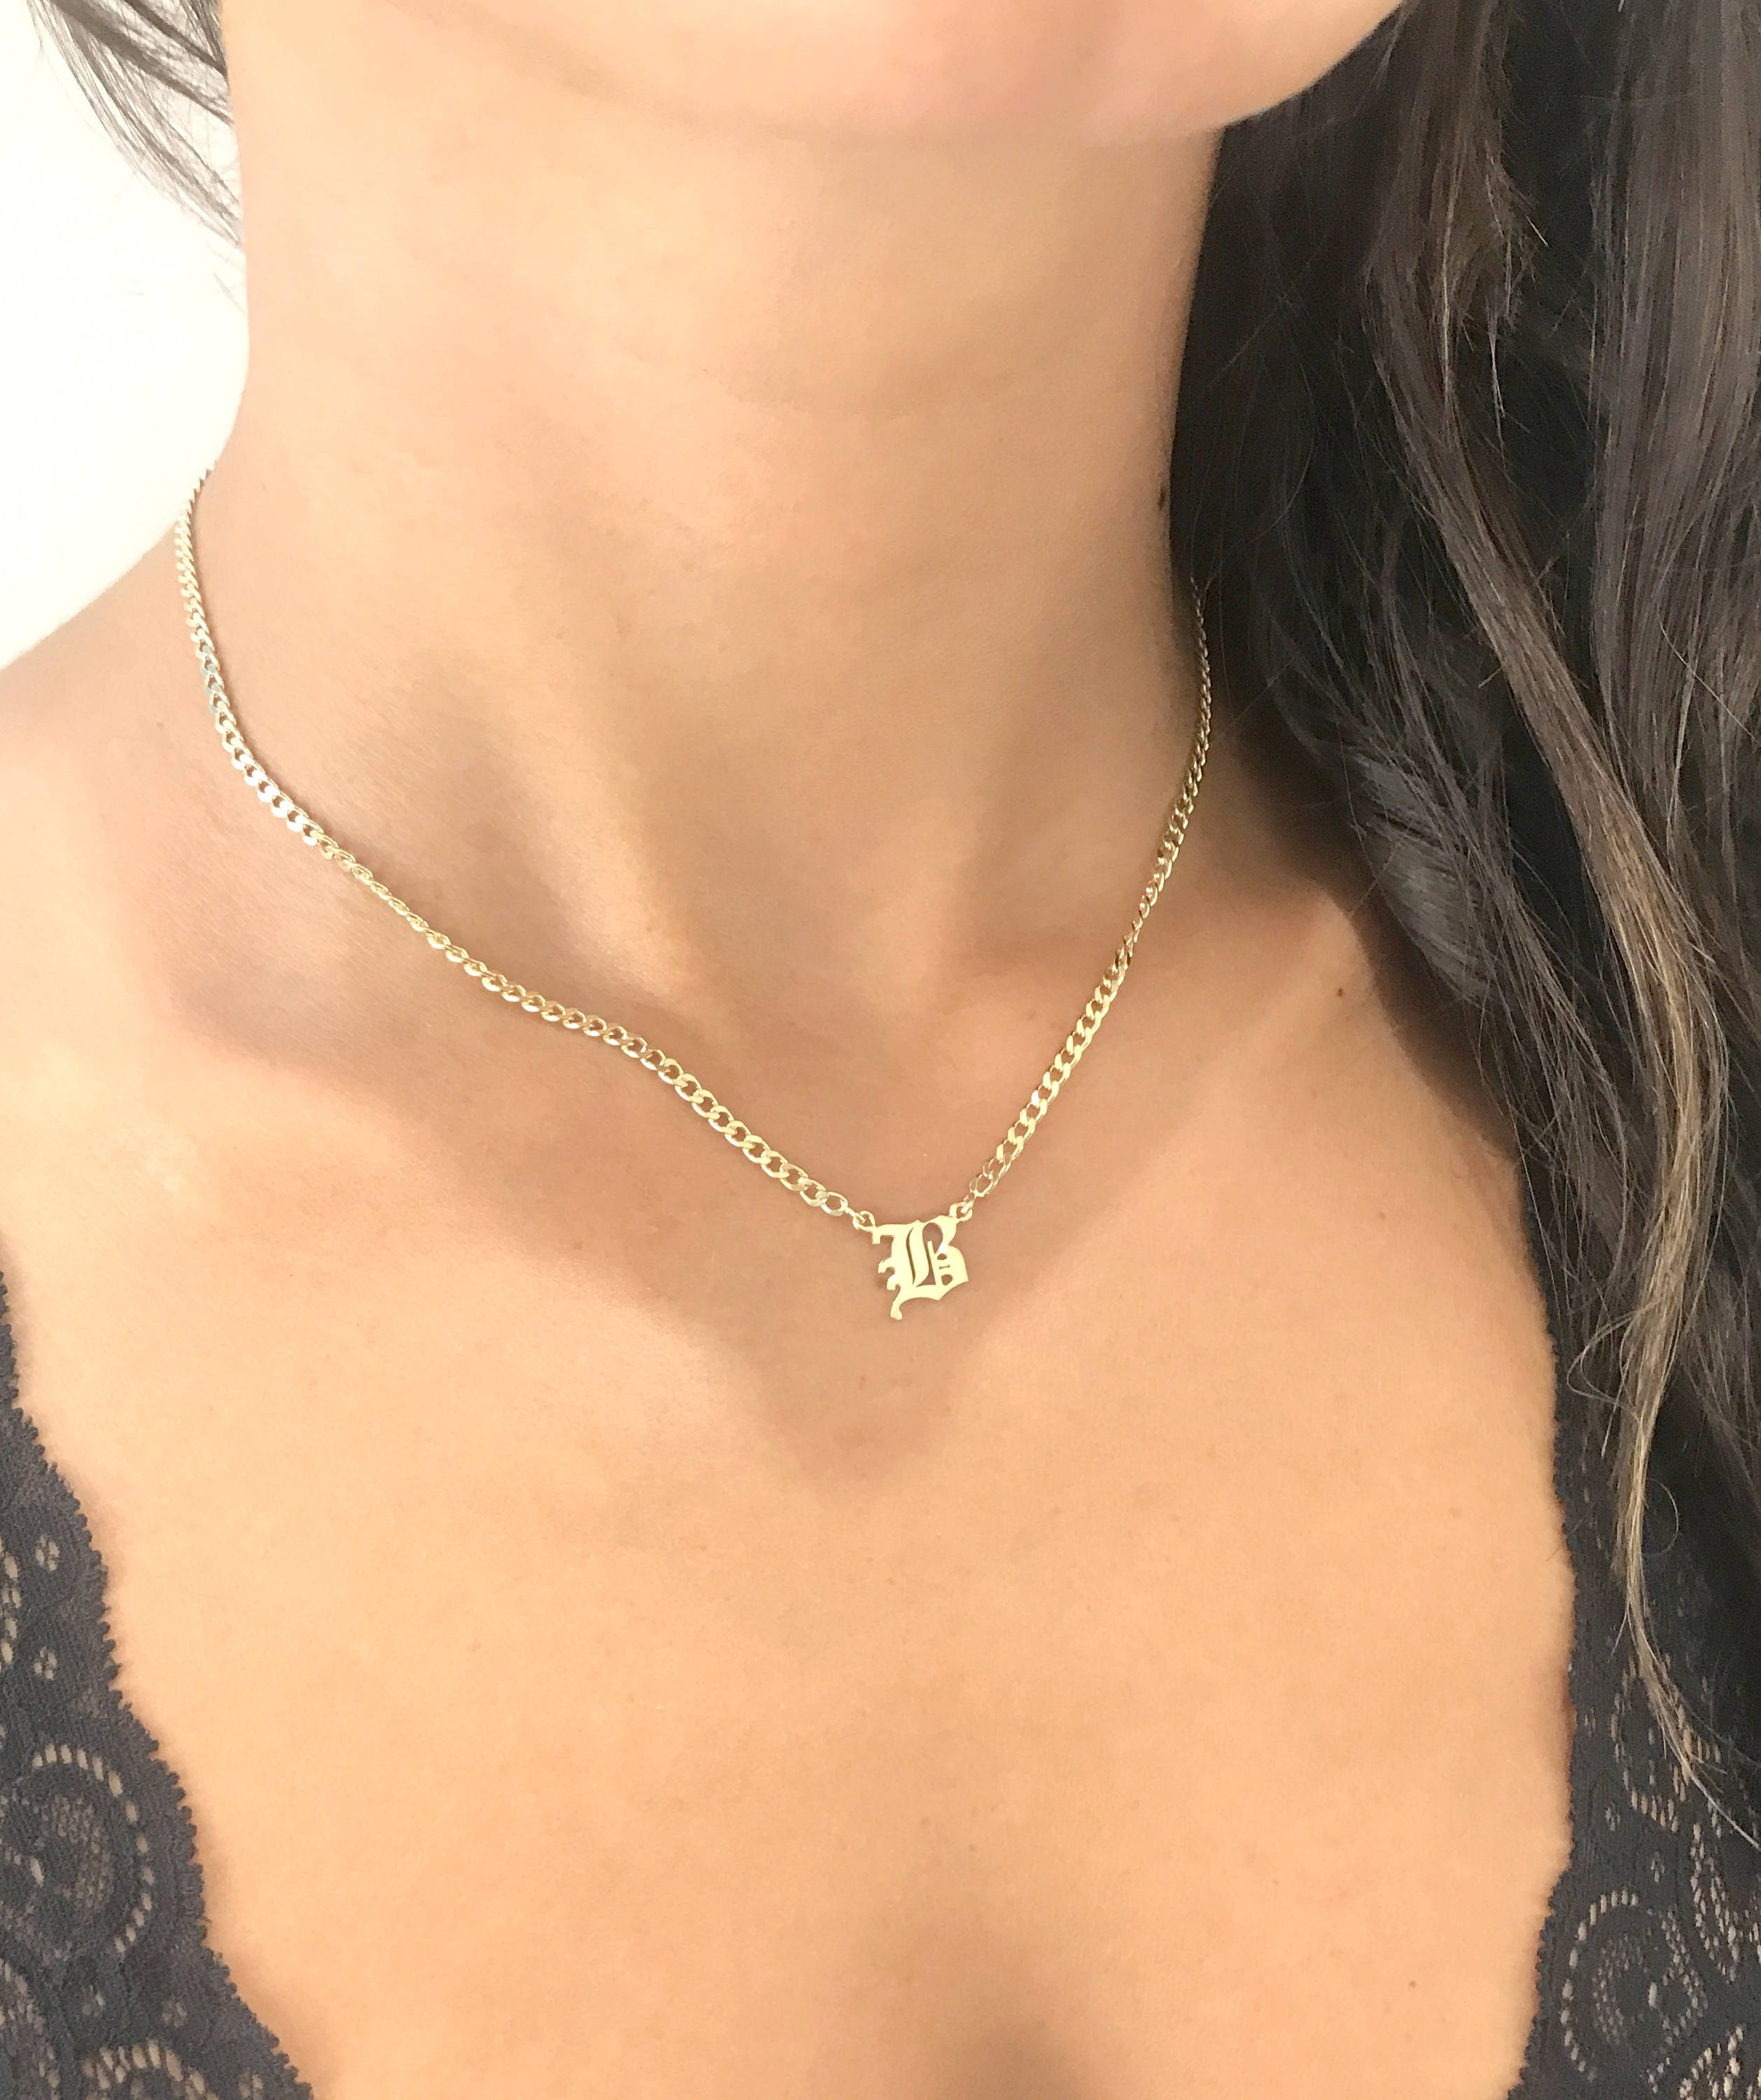 Old English Initial Necklace – Dainty Initial Necklace – Curb Chain Necklace – Personalized Necklace – Gothic Initial Necklace – Mother Gift With 2019 Curb Chain Necklaces (View 7 of 25)